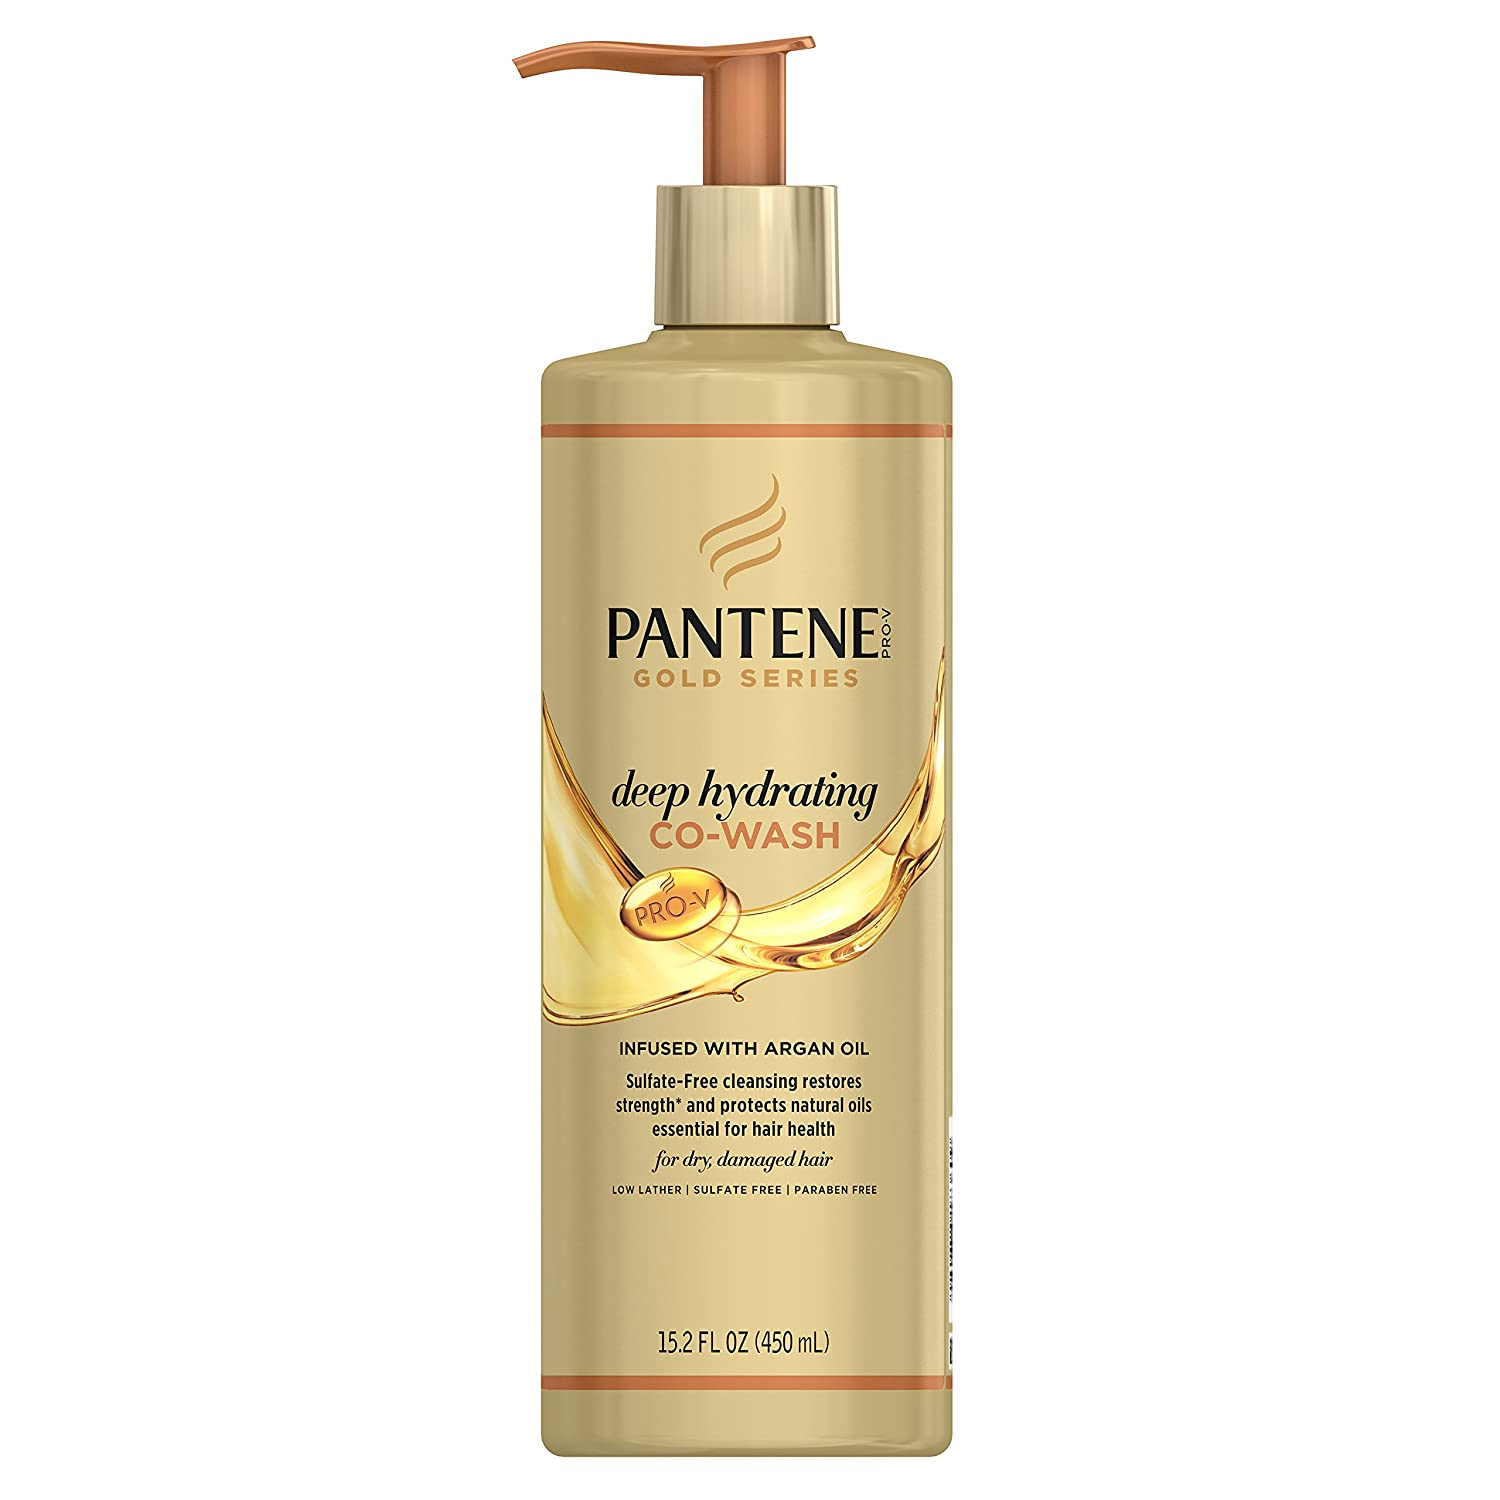 Pantene, Co Wash, Deep Hydrating, Pro-V Gold Series, for Natural and Curly Textured Hair, 15.2 fl oz